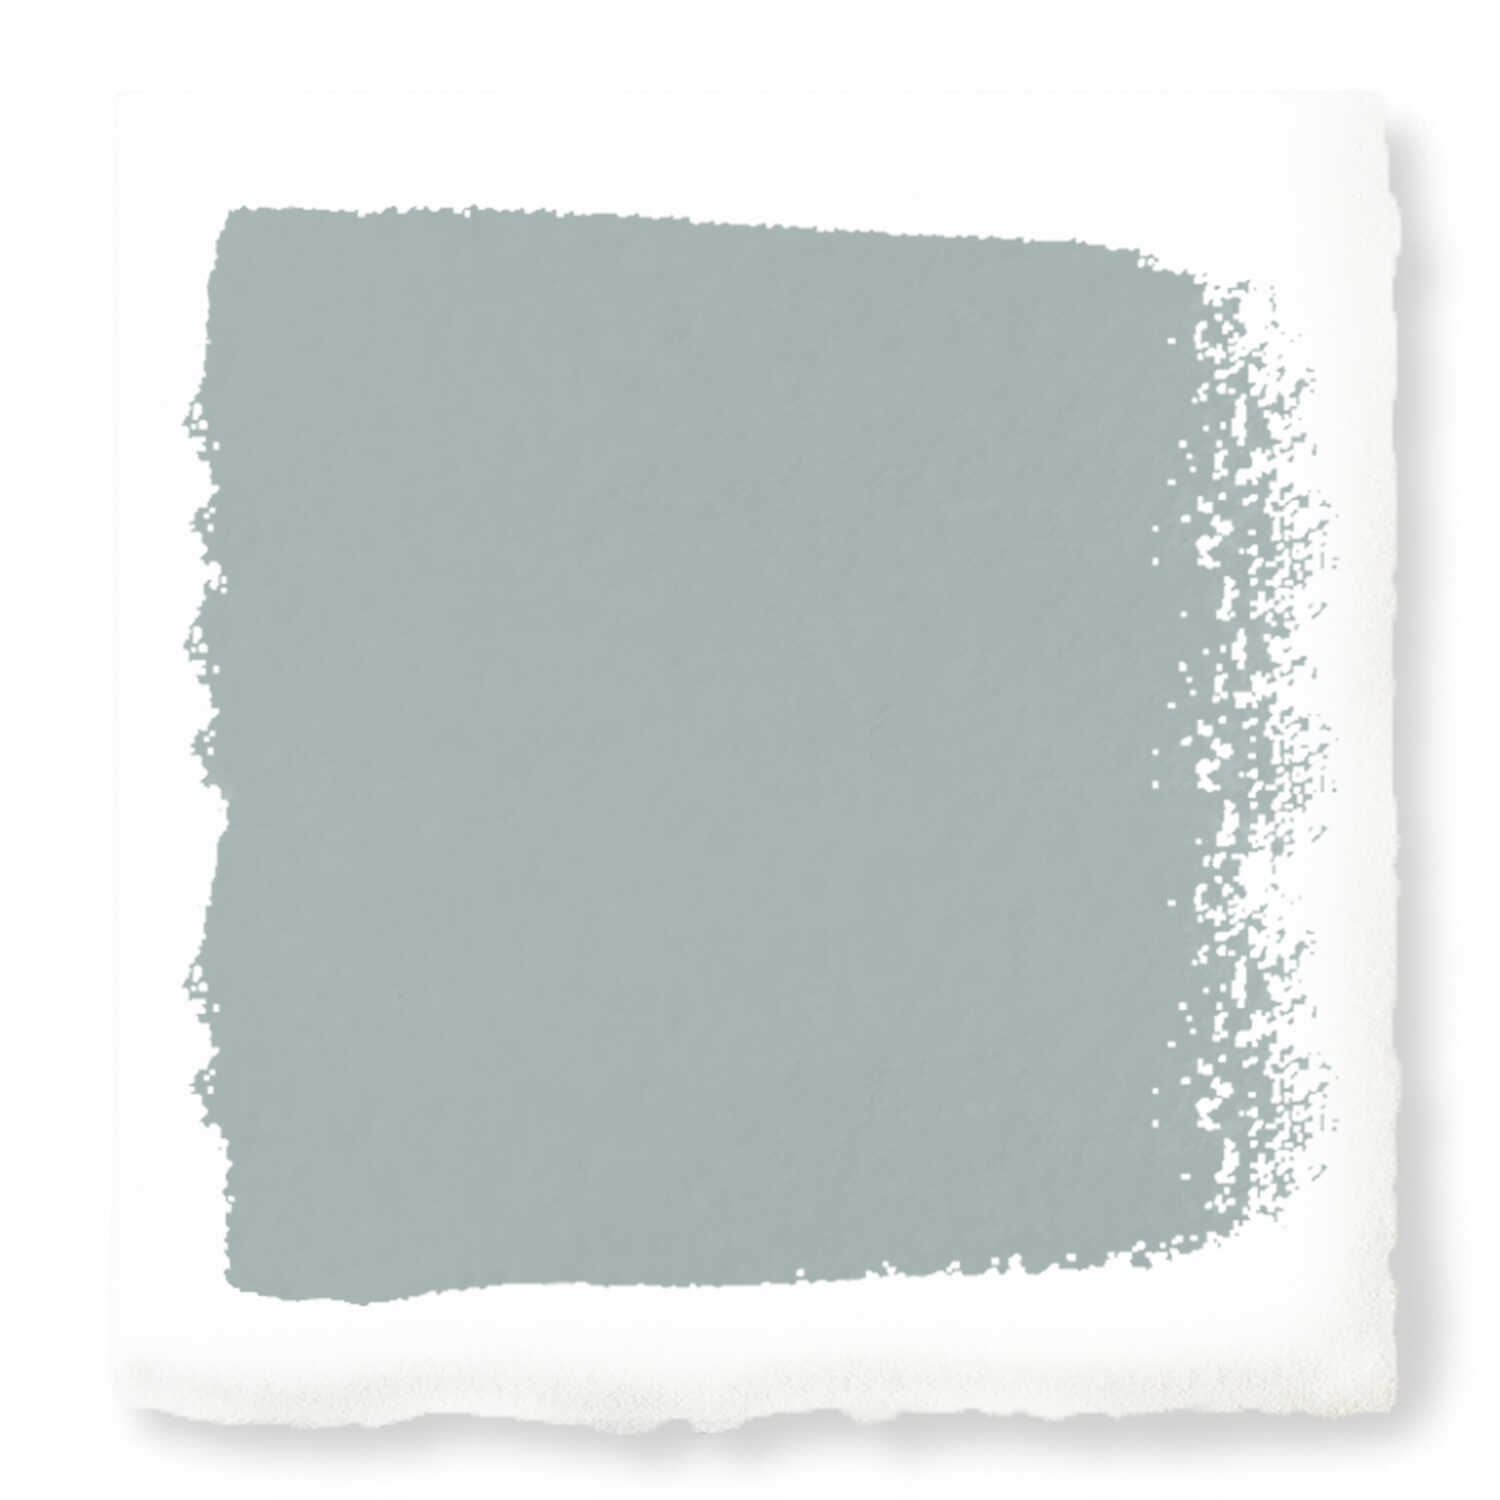 Magnolia Home  Satin  Rainy Days  Exterior Paint and Primer  1 gal.